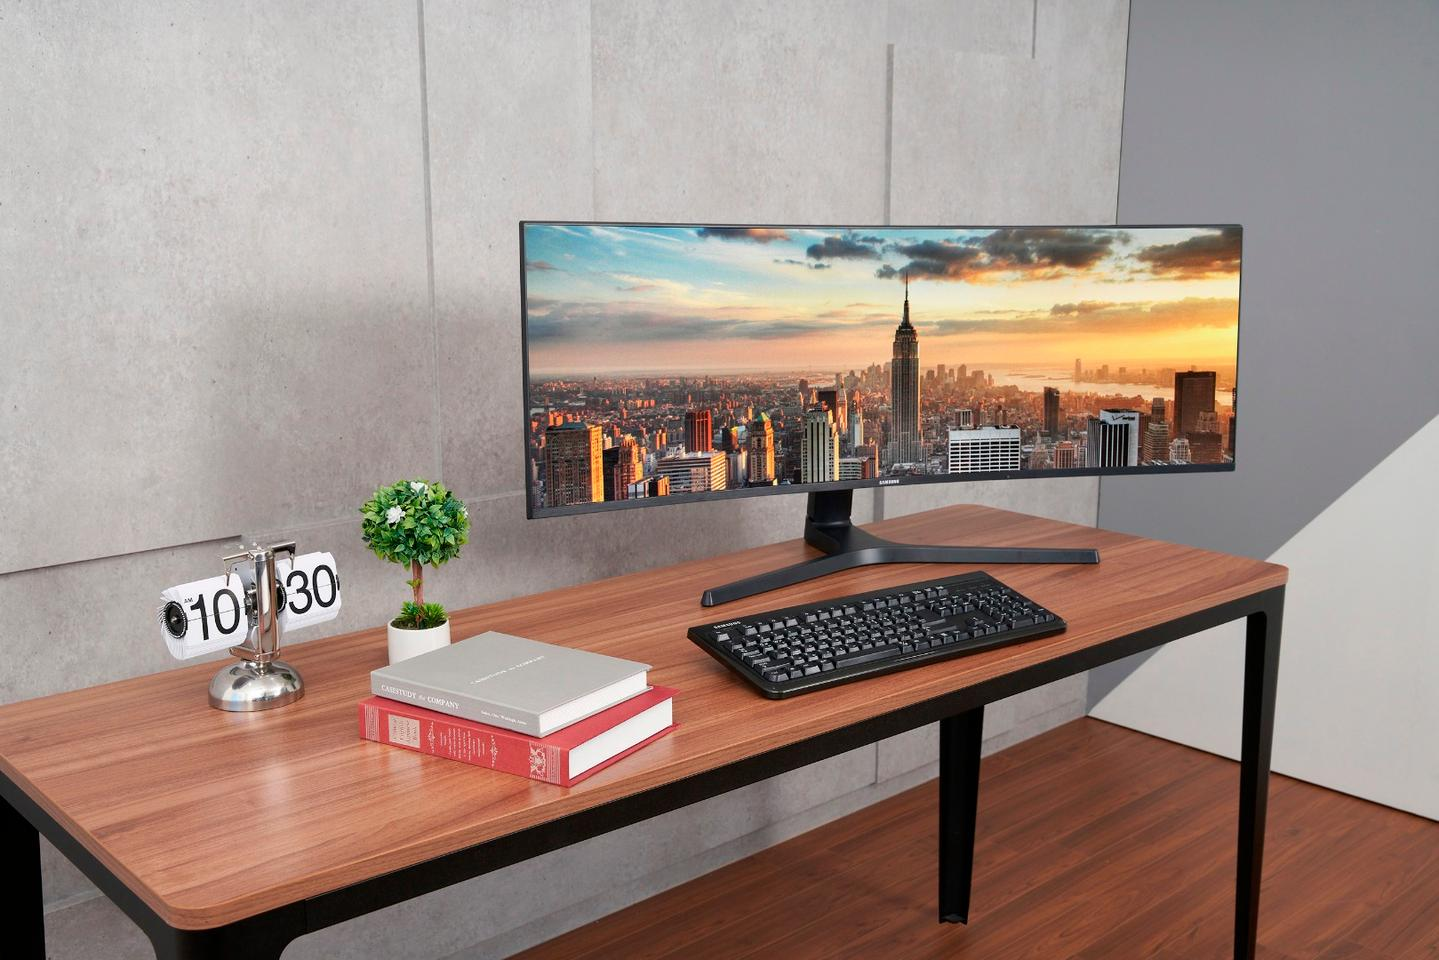 The CJ89 model is a 43-in display with a refresh rate of 120 Hz and a resolution of 3,840 x 1,200